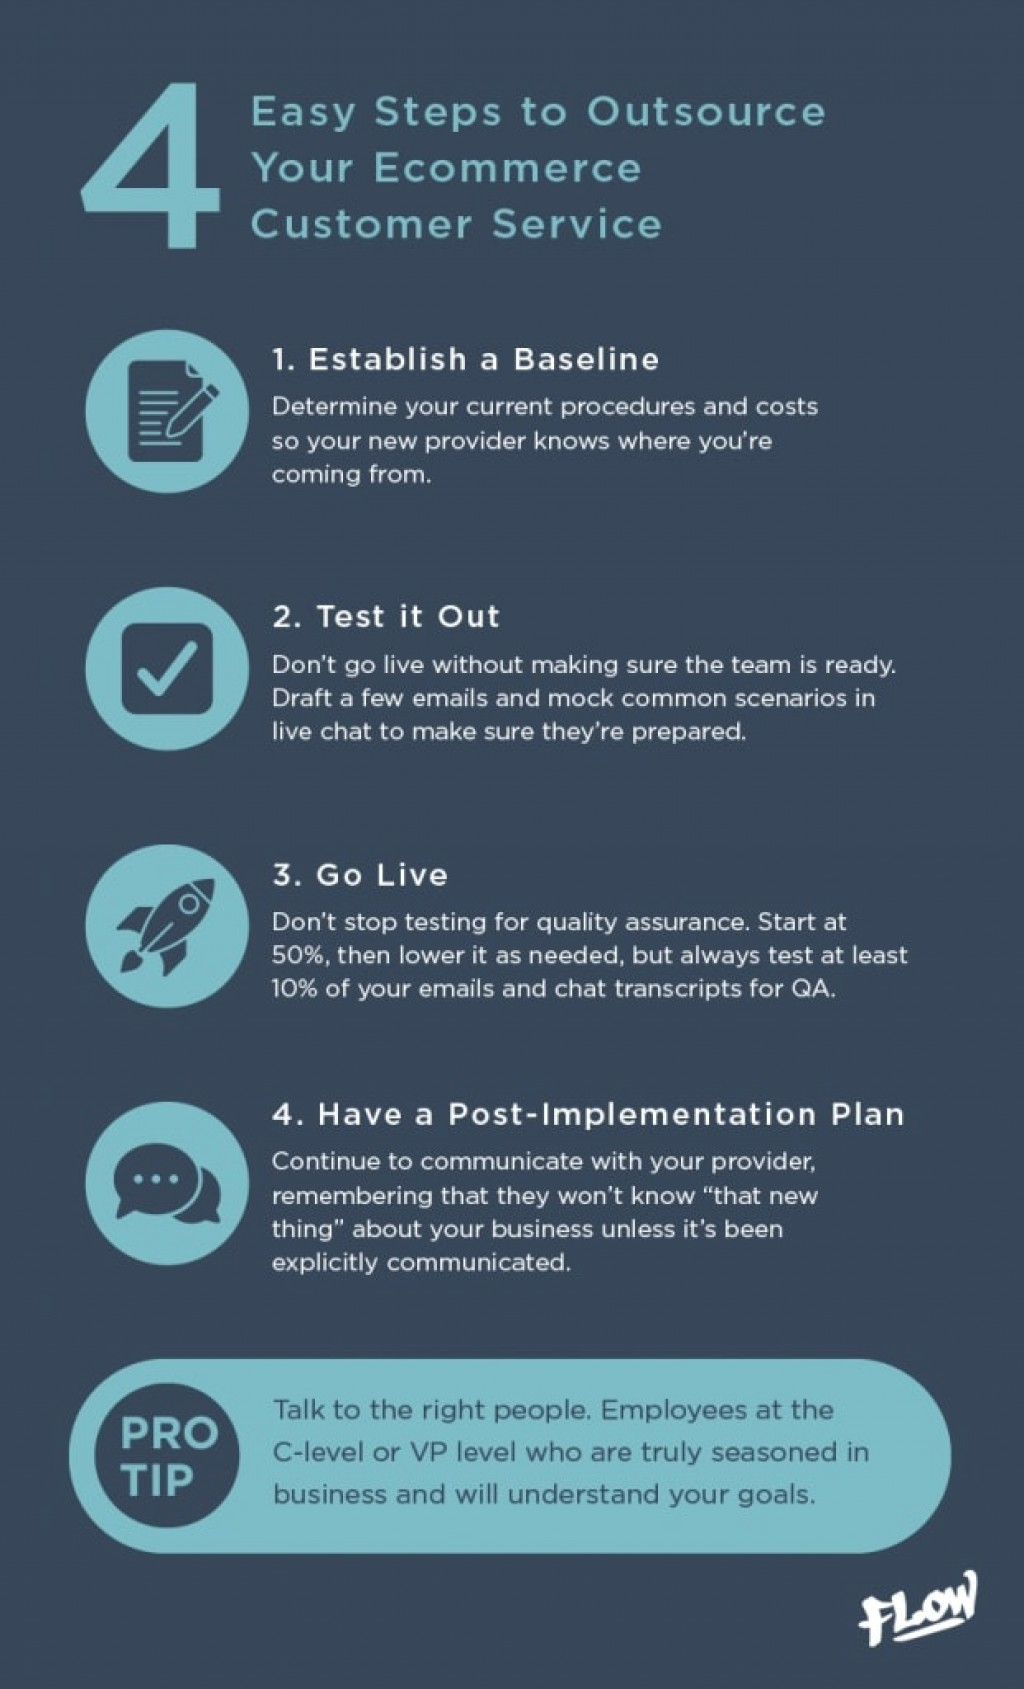 infographic 4 easy steps to outsource your ecommerce customer service